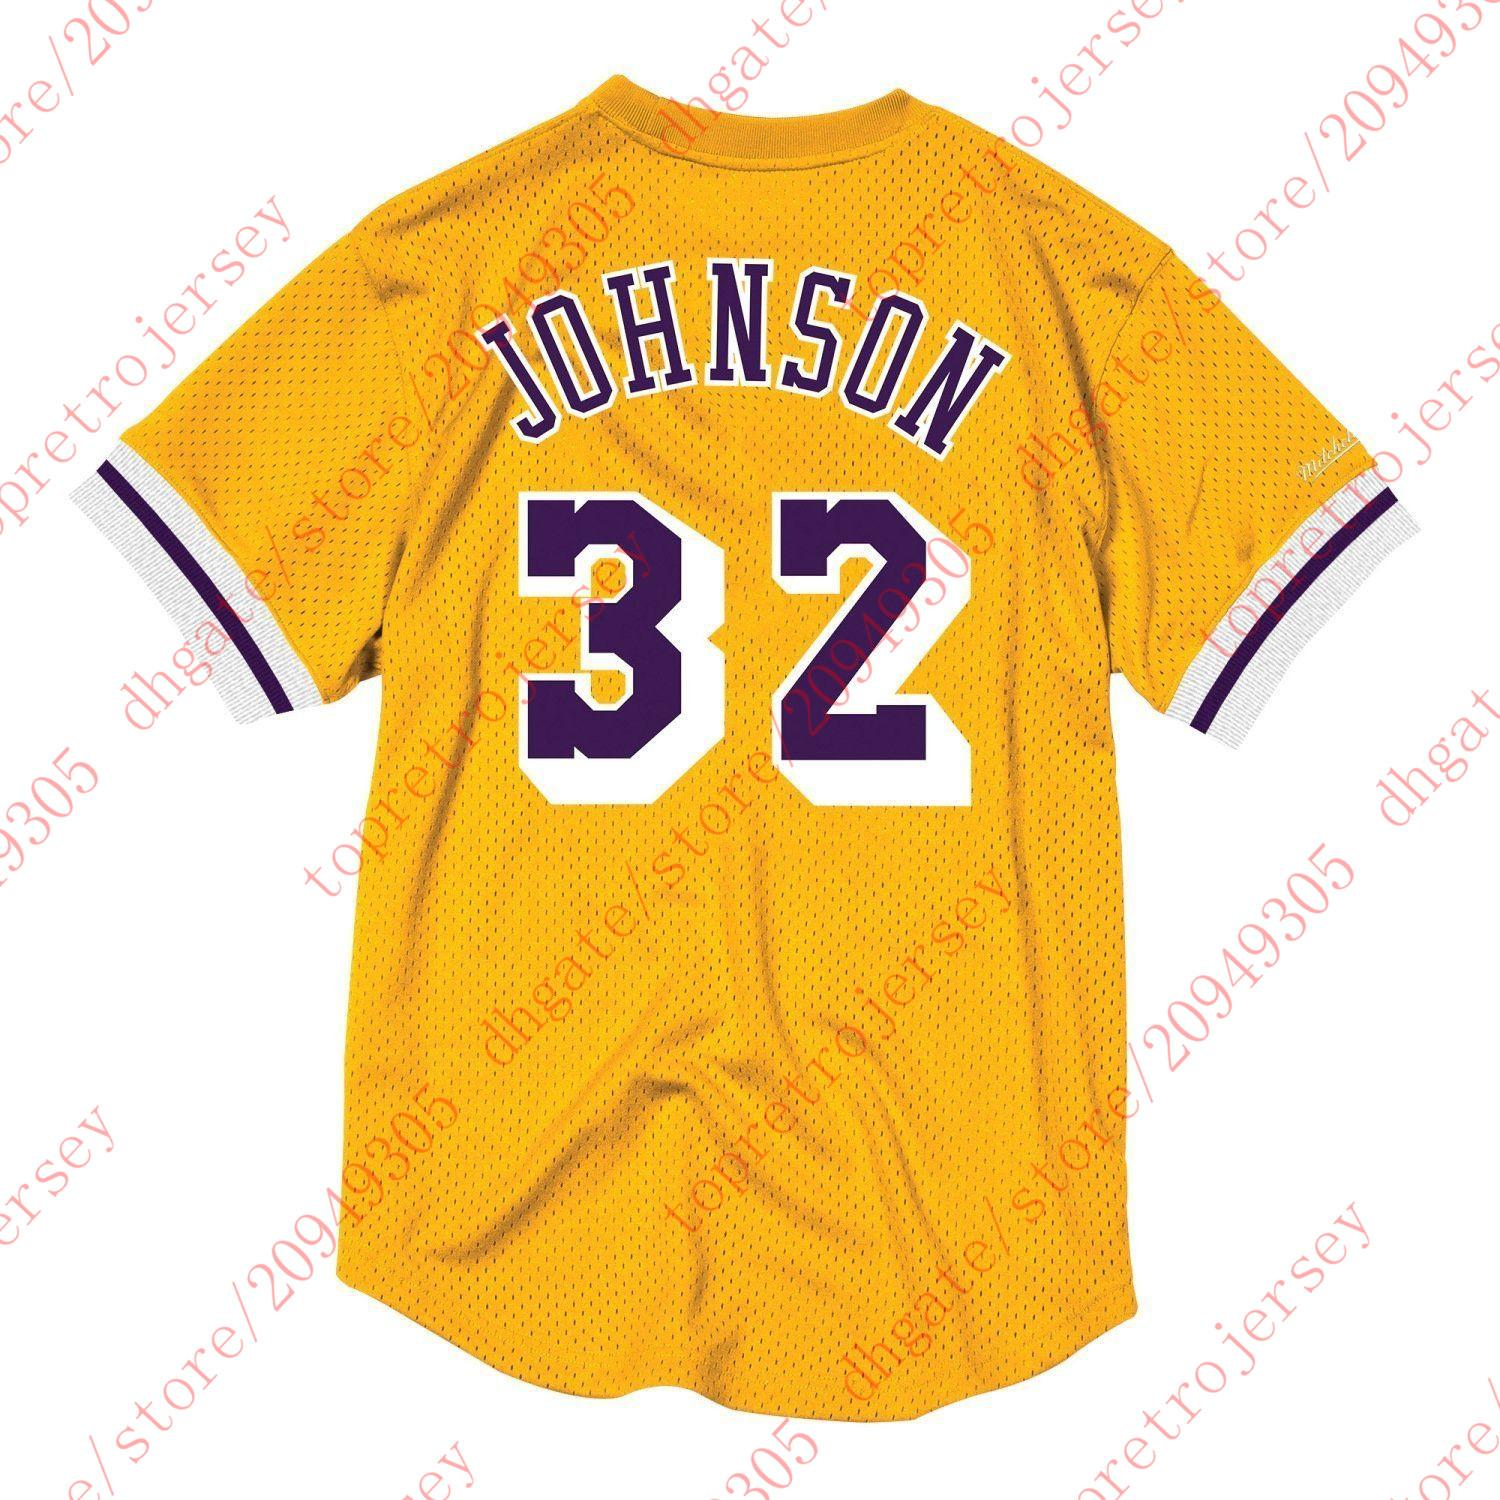 Cheap Throwbacks Top  32 Johnson Mitchell   Ness Custom Mesh Jersey ... 511a86370